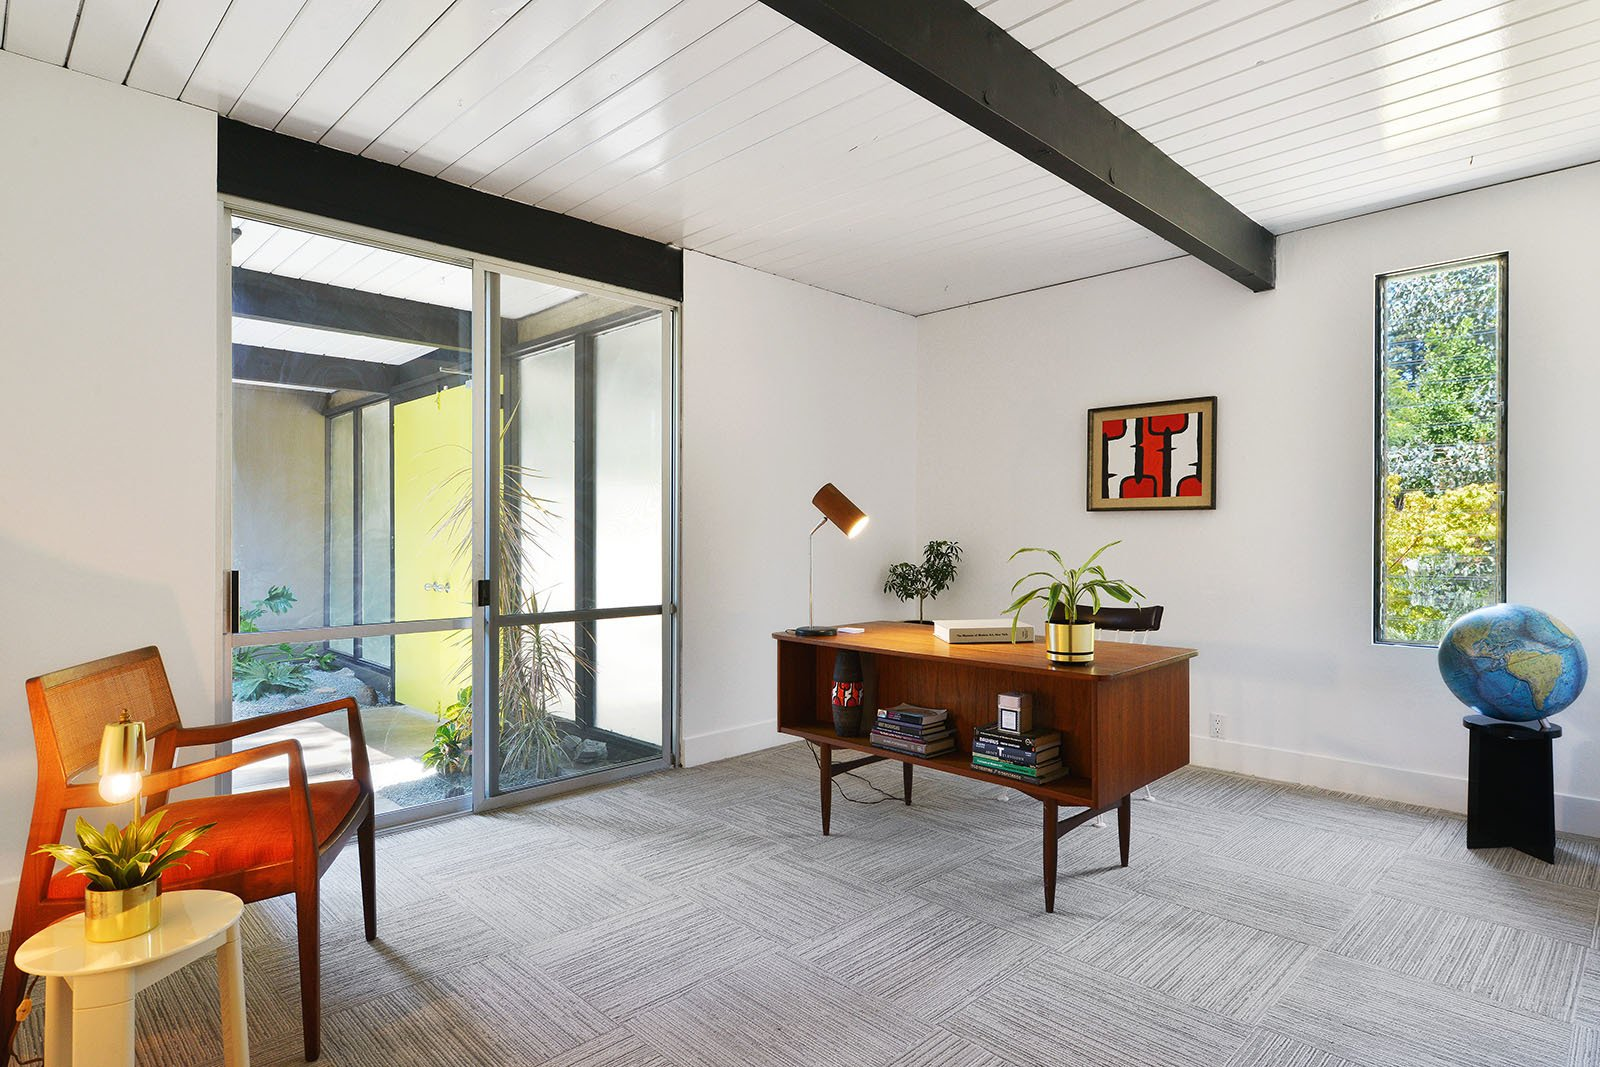 Photo 6 of 15 in An Enormous Bay Area Eichler Asks $1.45M